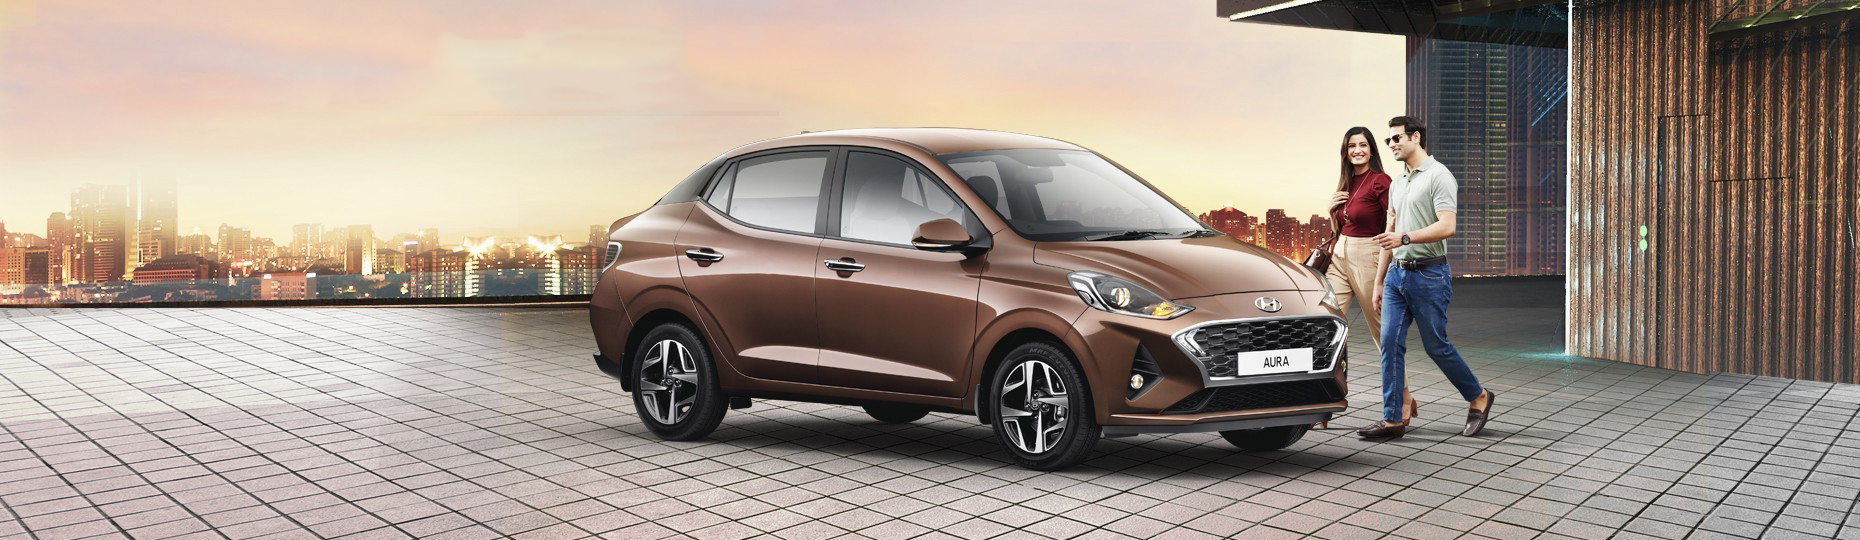 The All New AURA - Makes You Shine